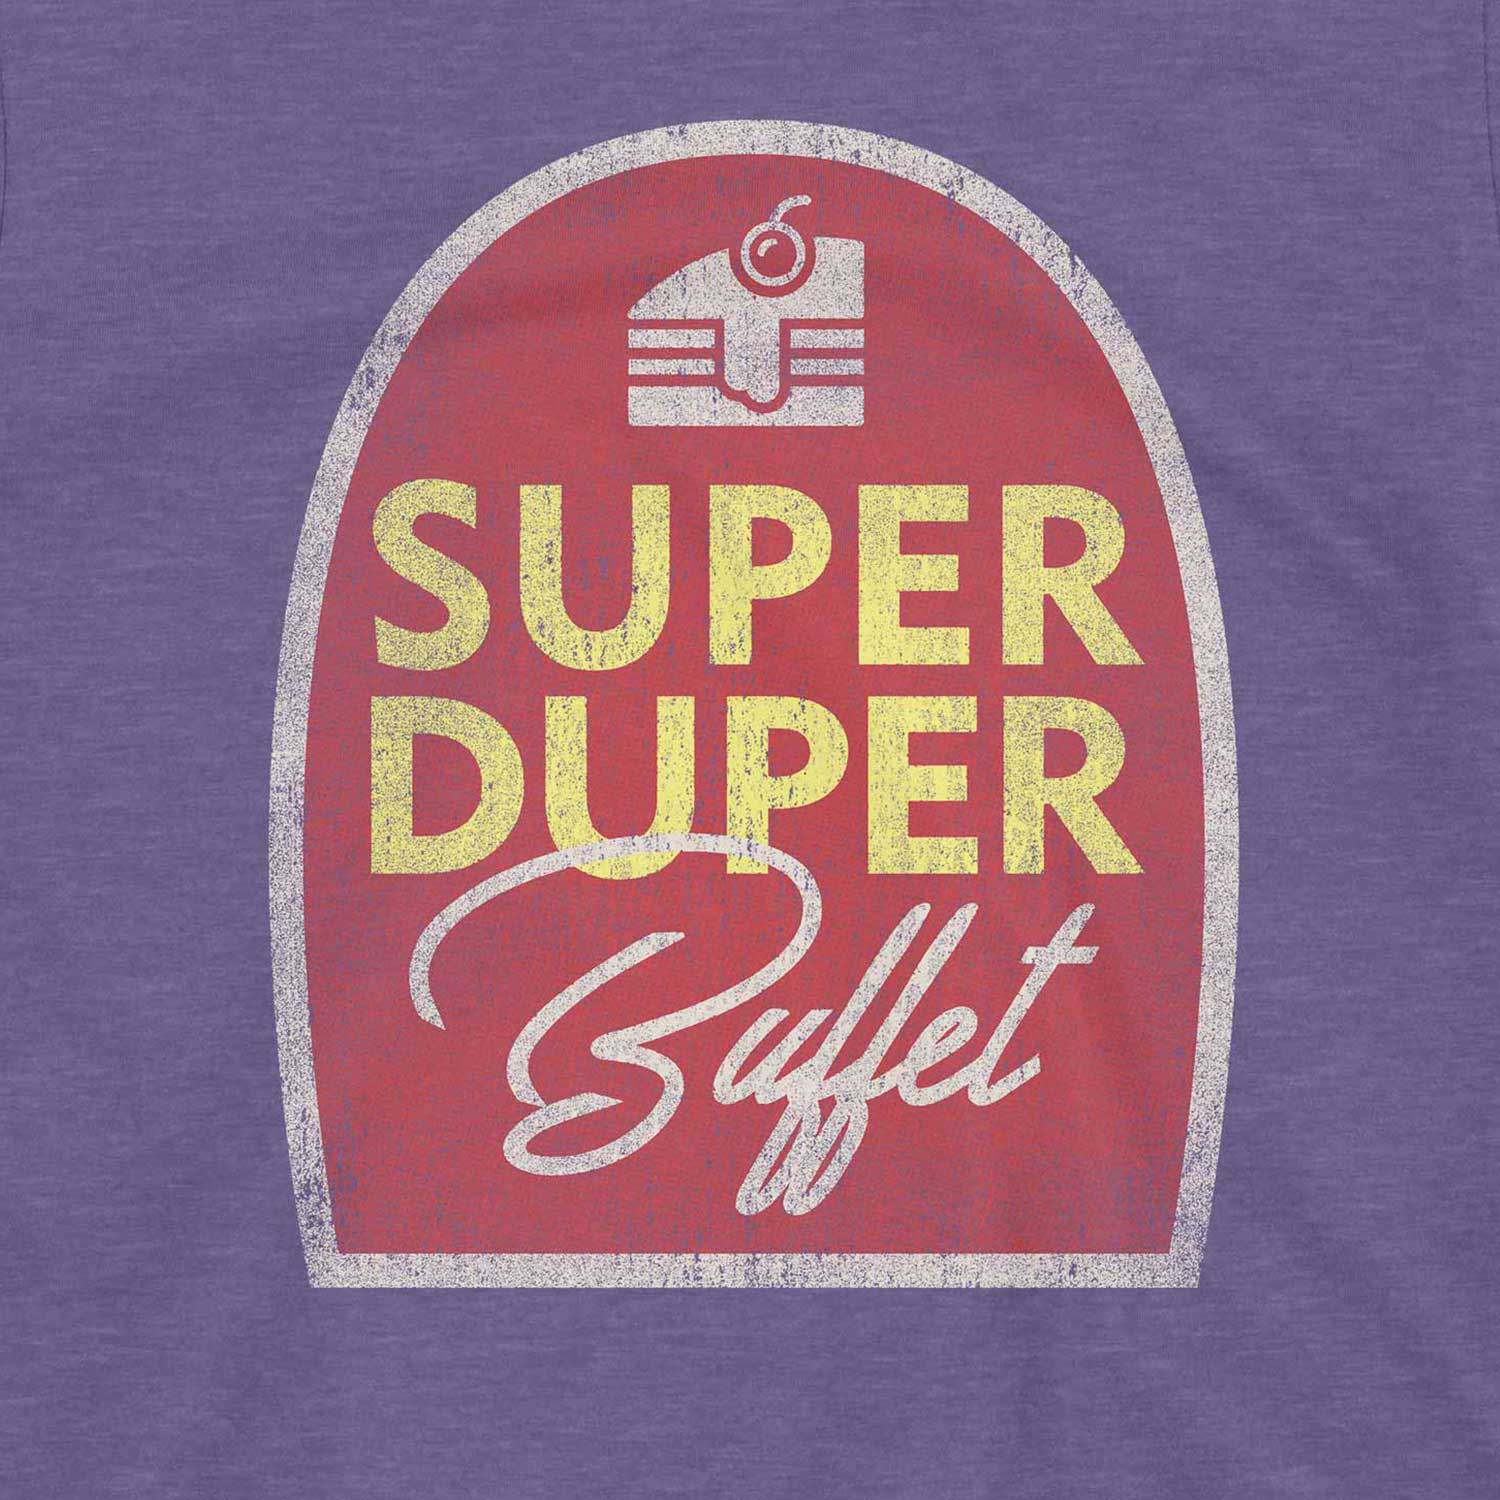 Super Duper Buffet Retro Inspired Unisex Graphic T Shirt